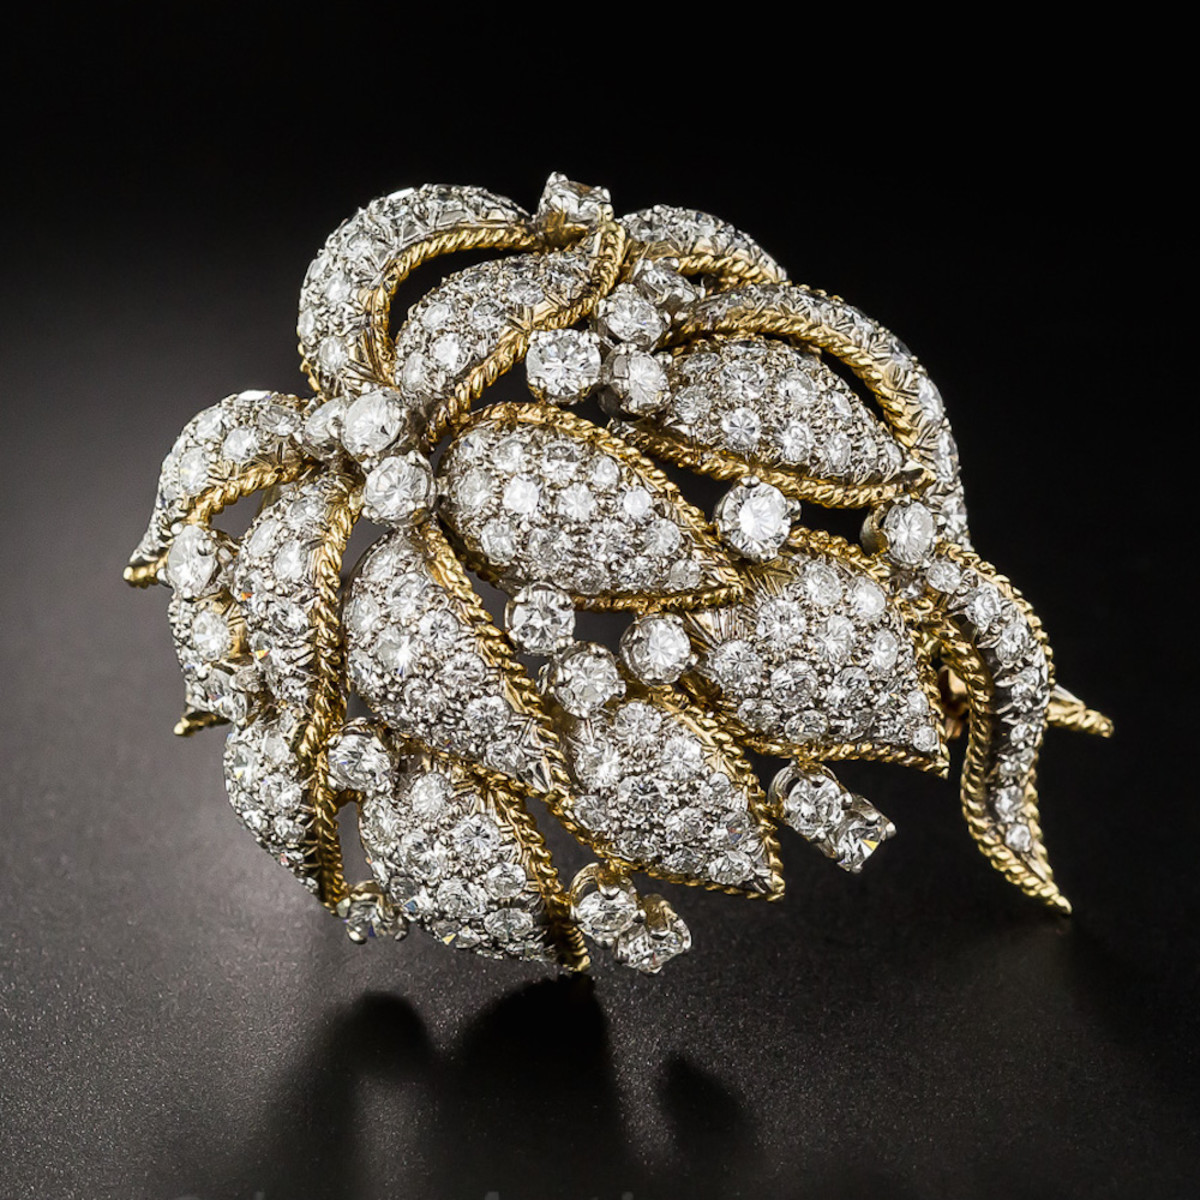 Diamond Corsage Brooch